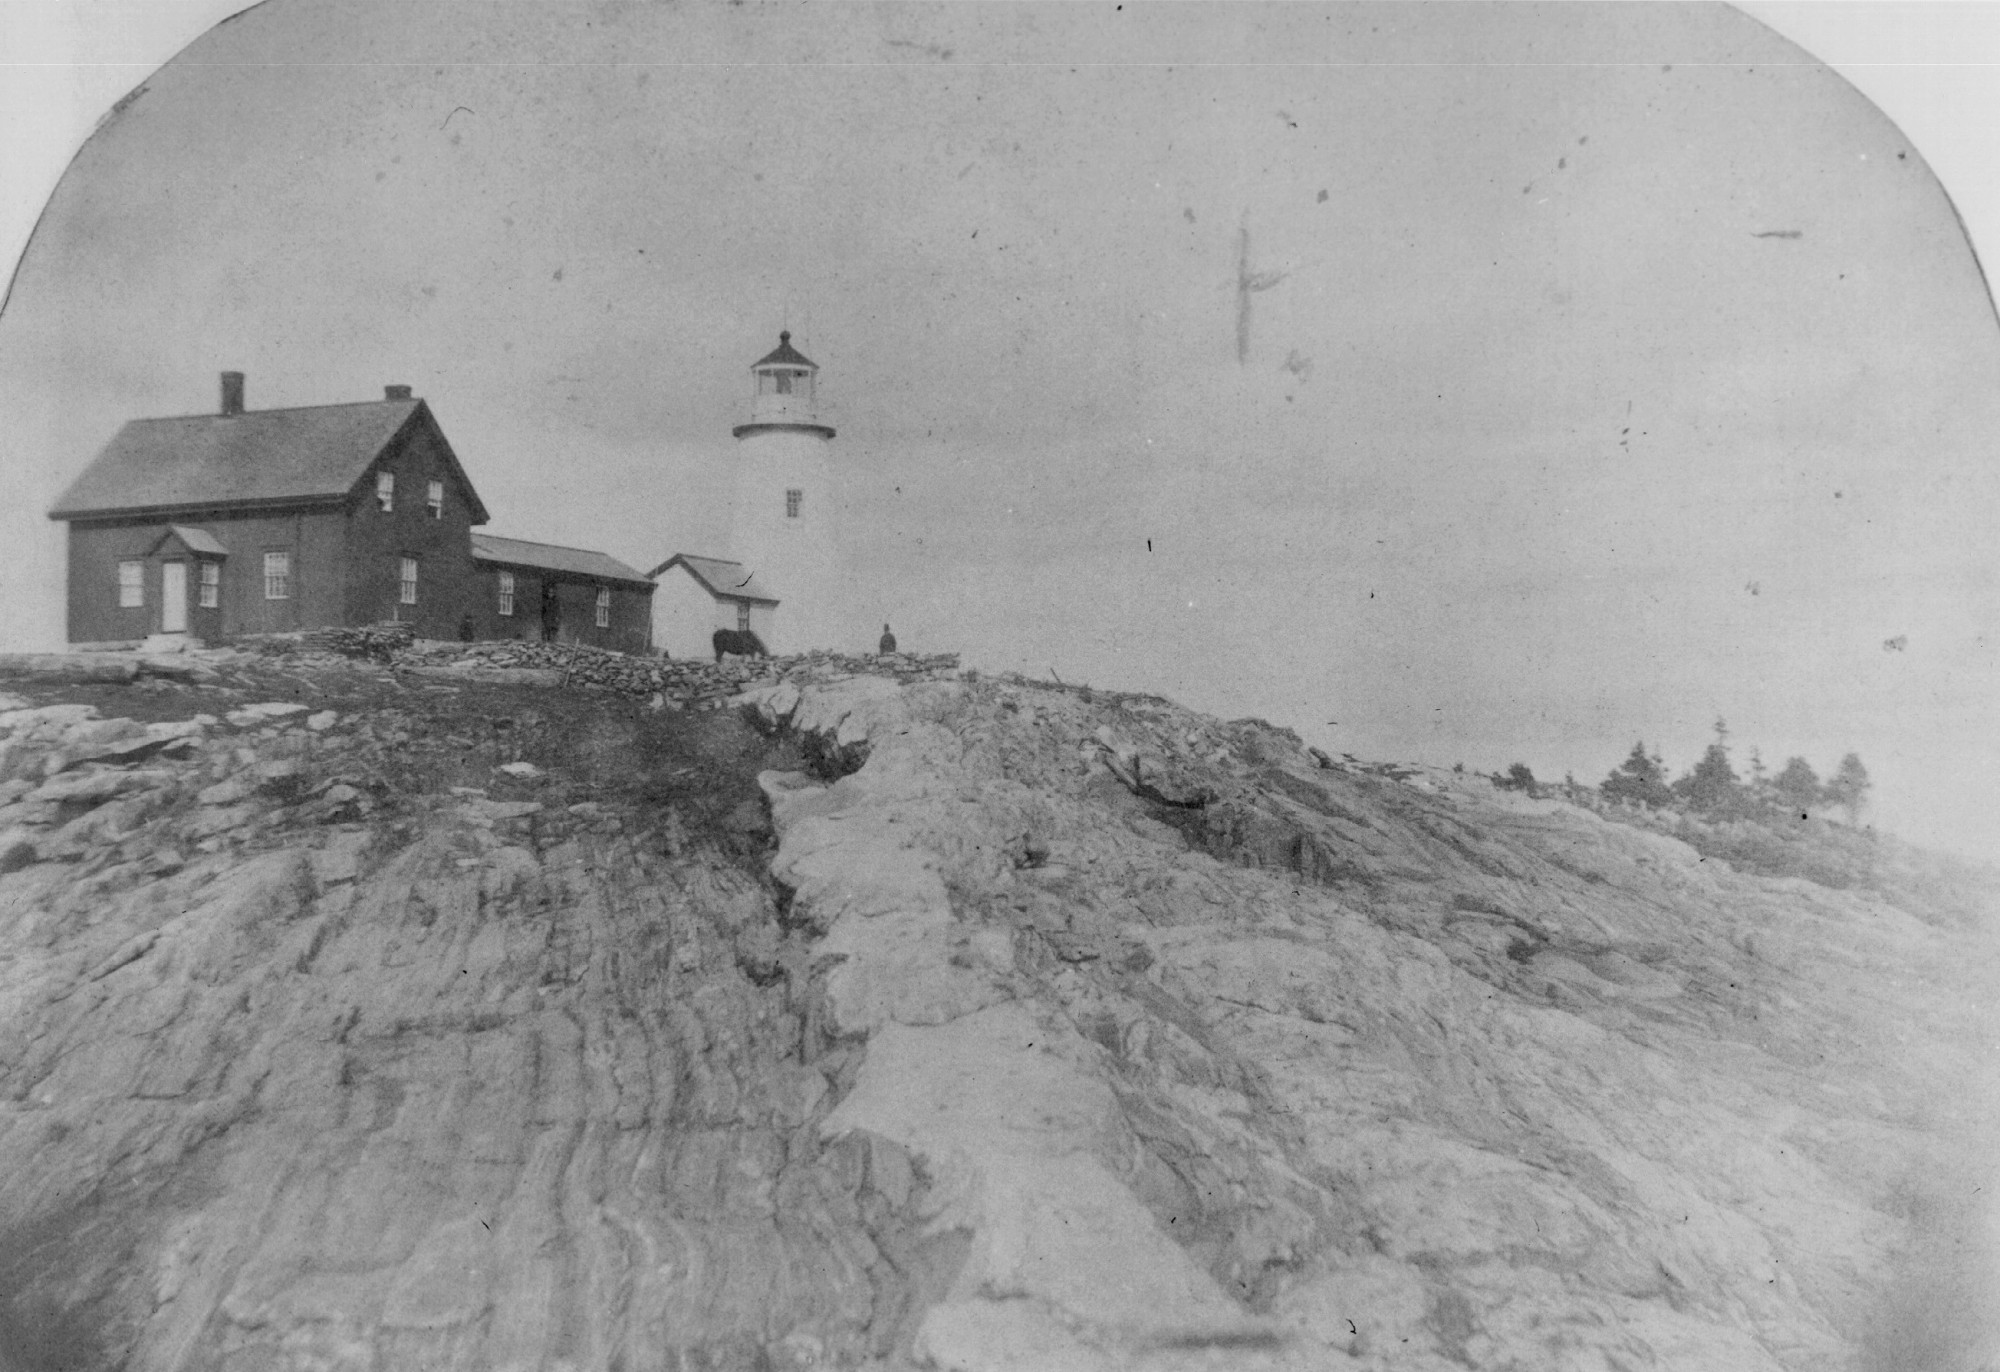 Pemaquid Point Lighthouse, late 1800's